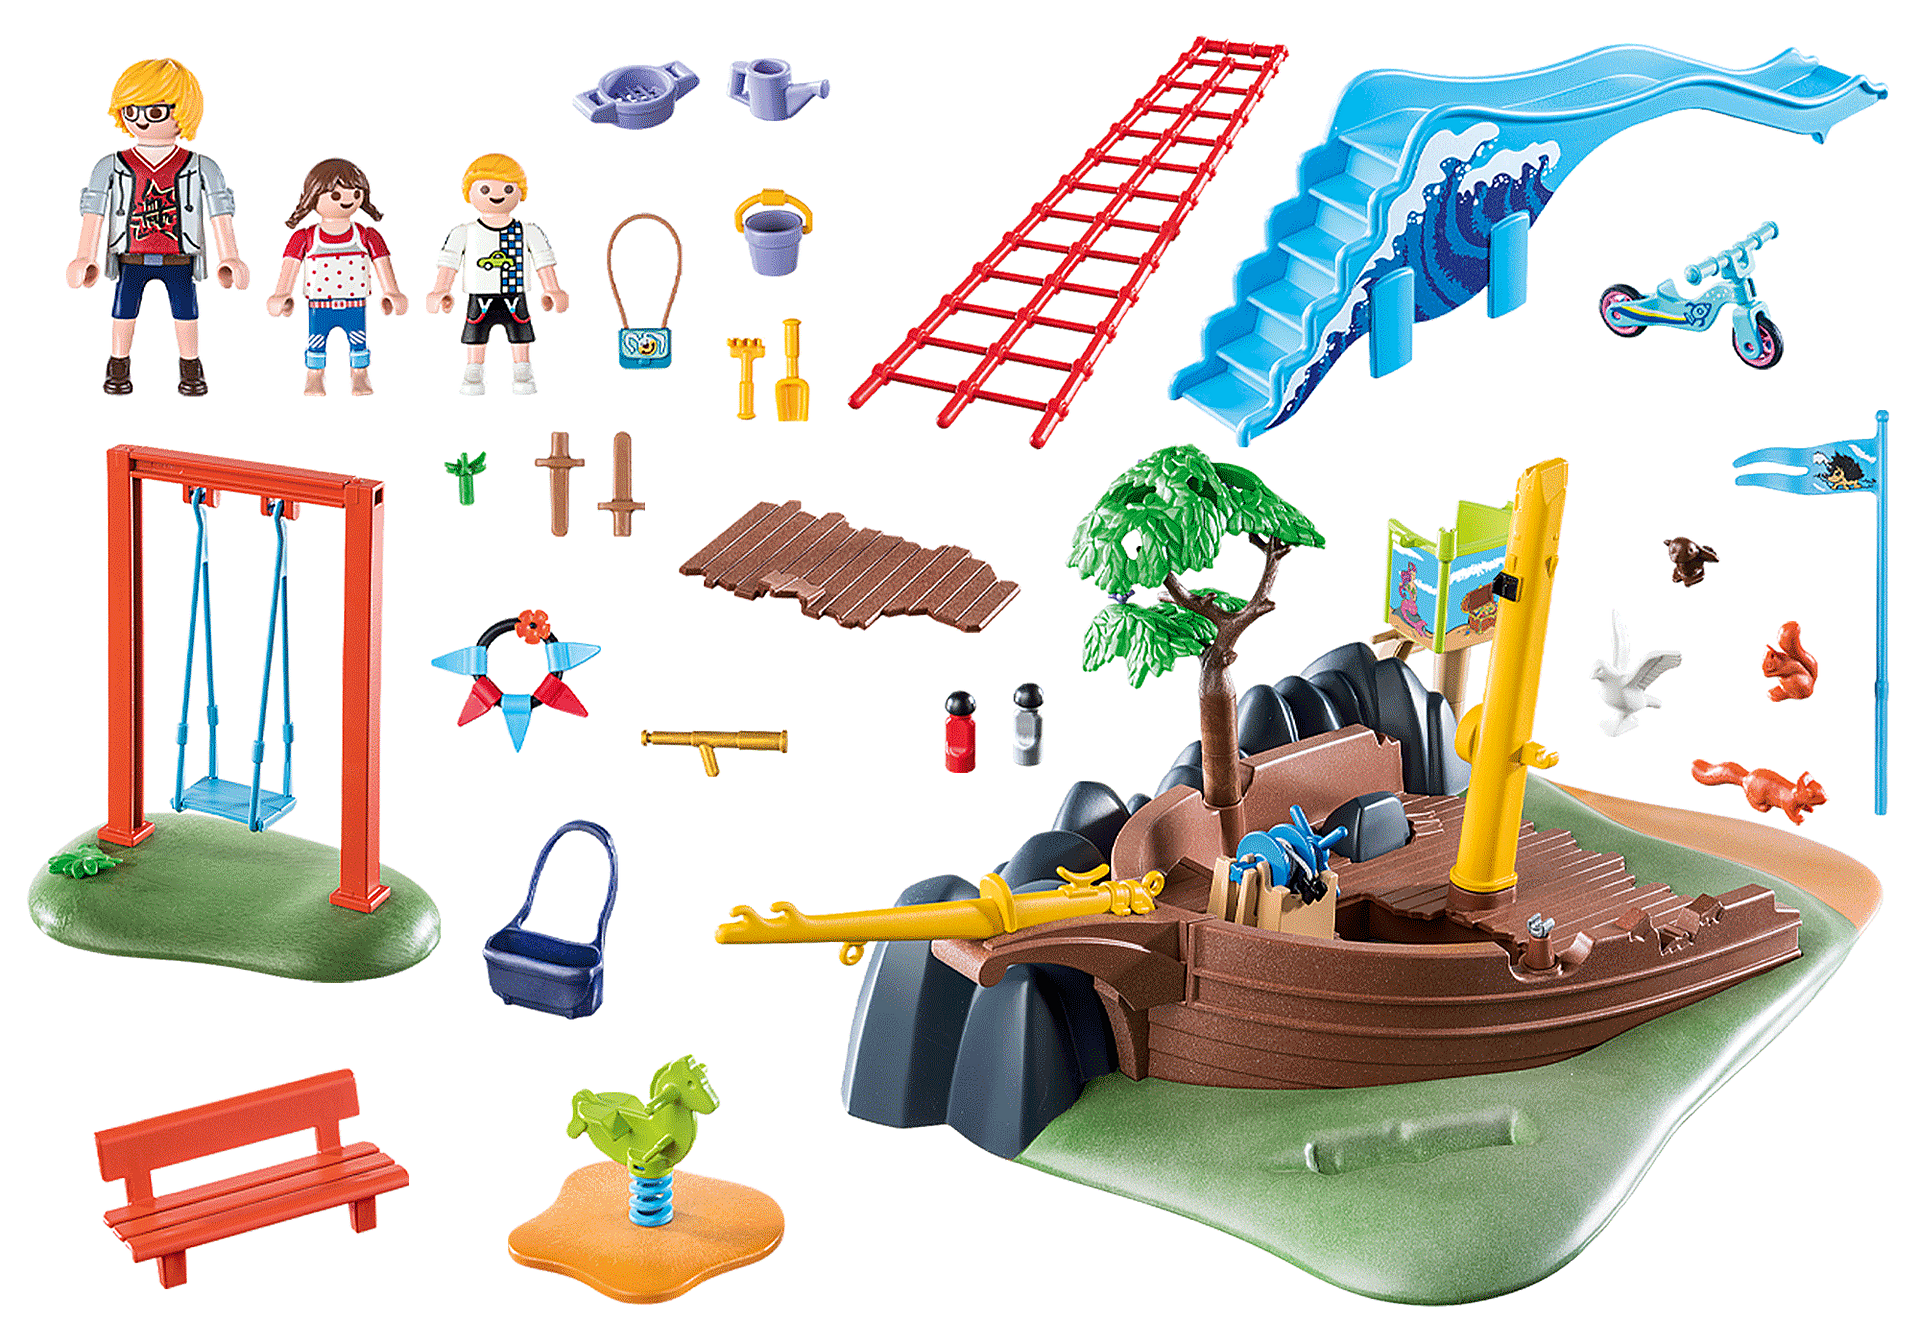 70741 Playground Adventure with Shipwreck zoom image3